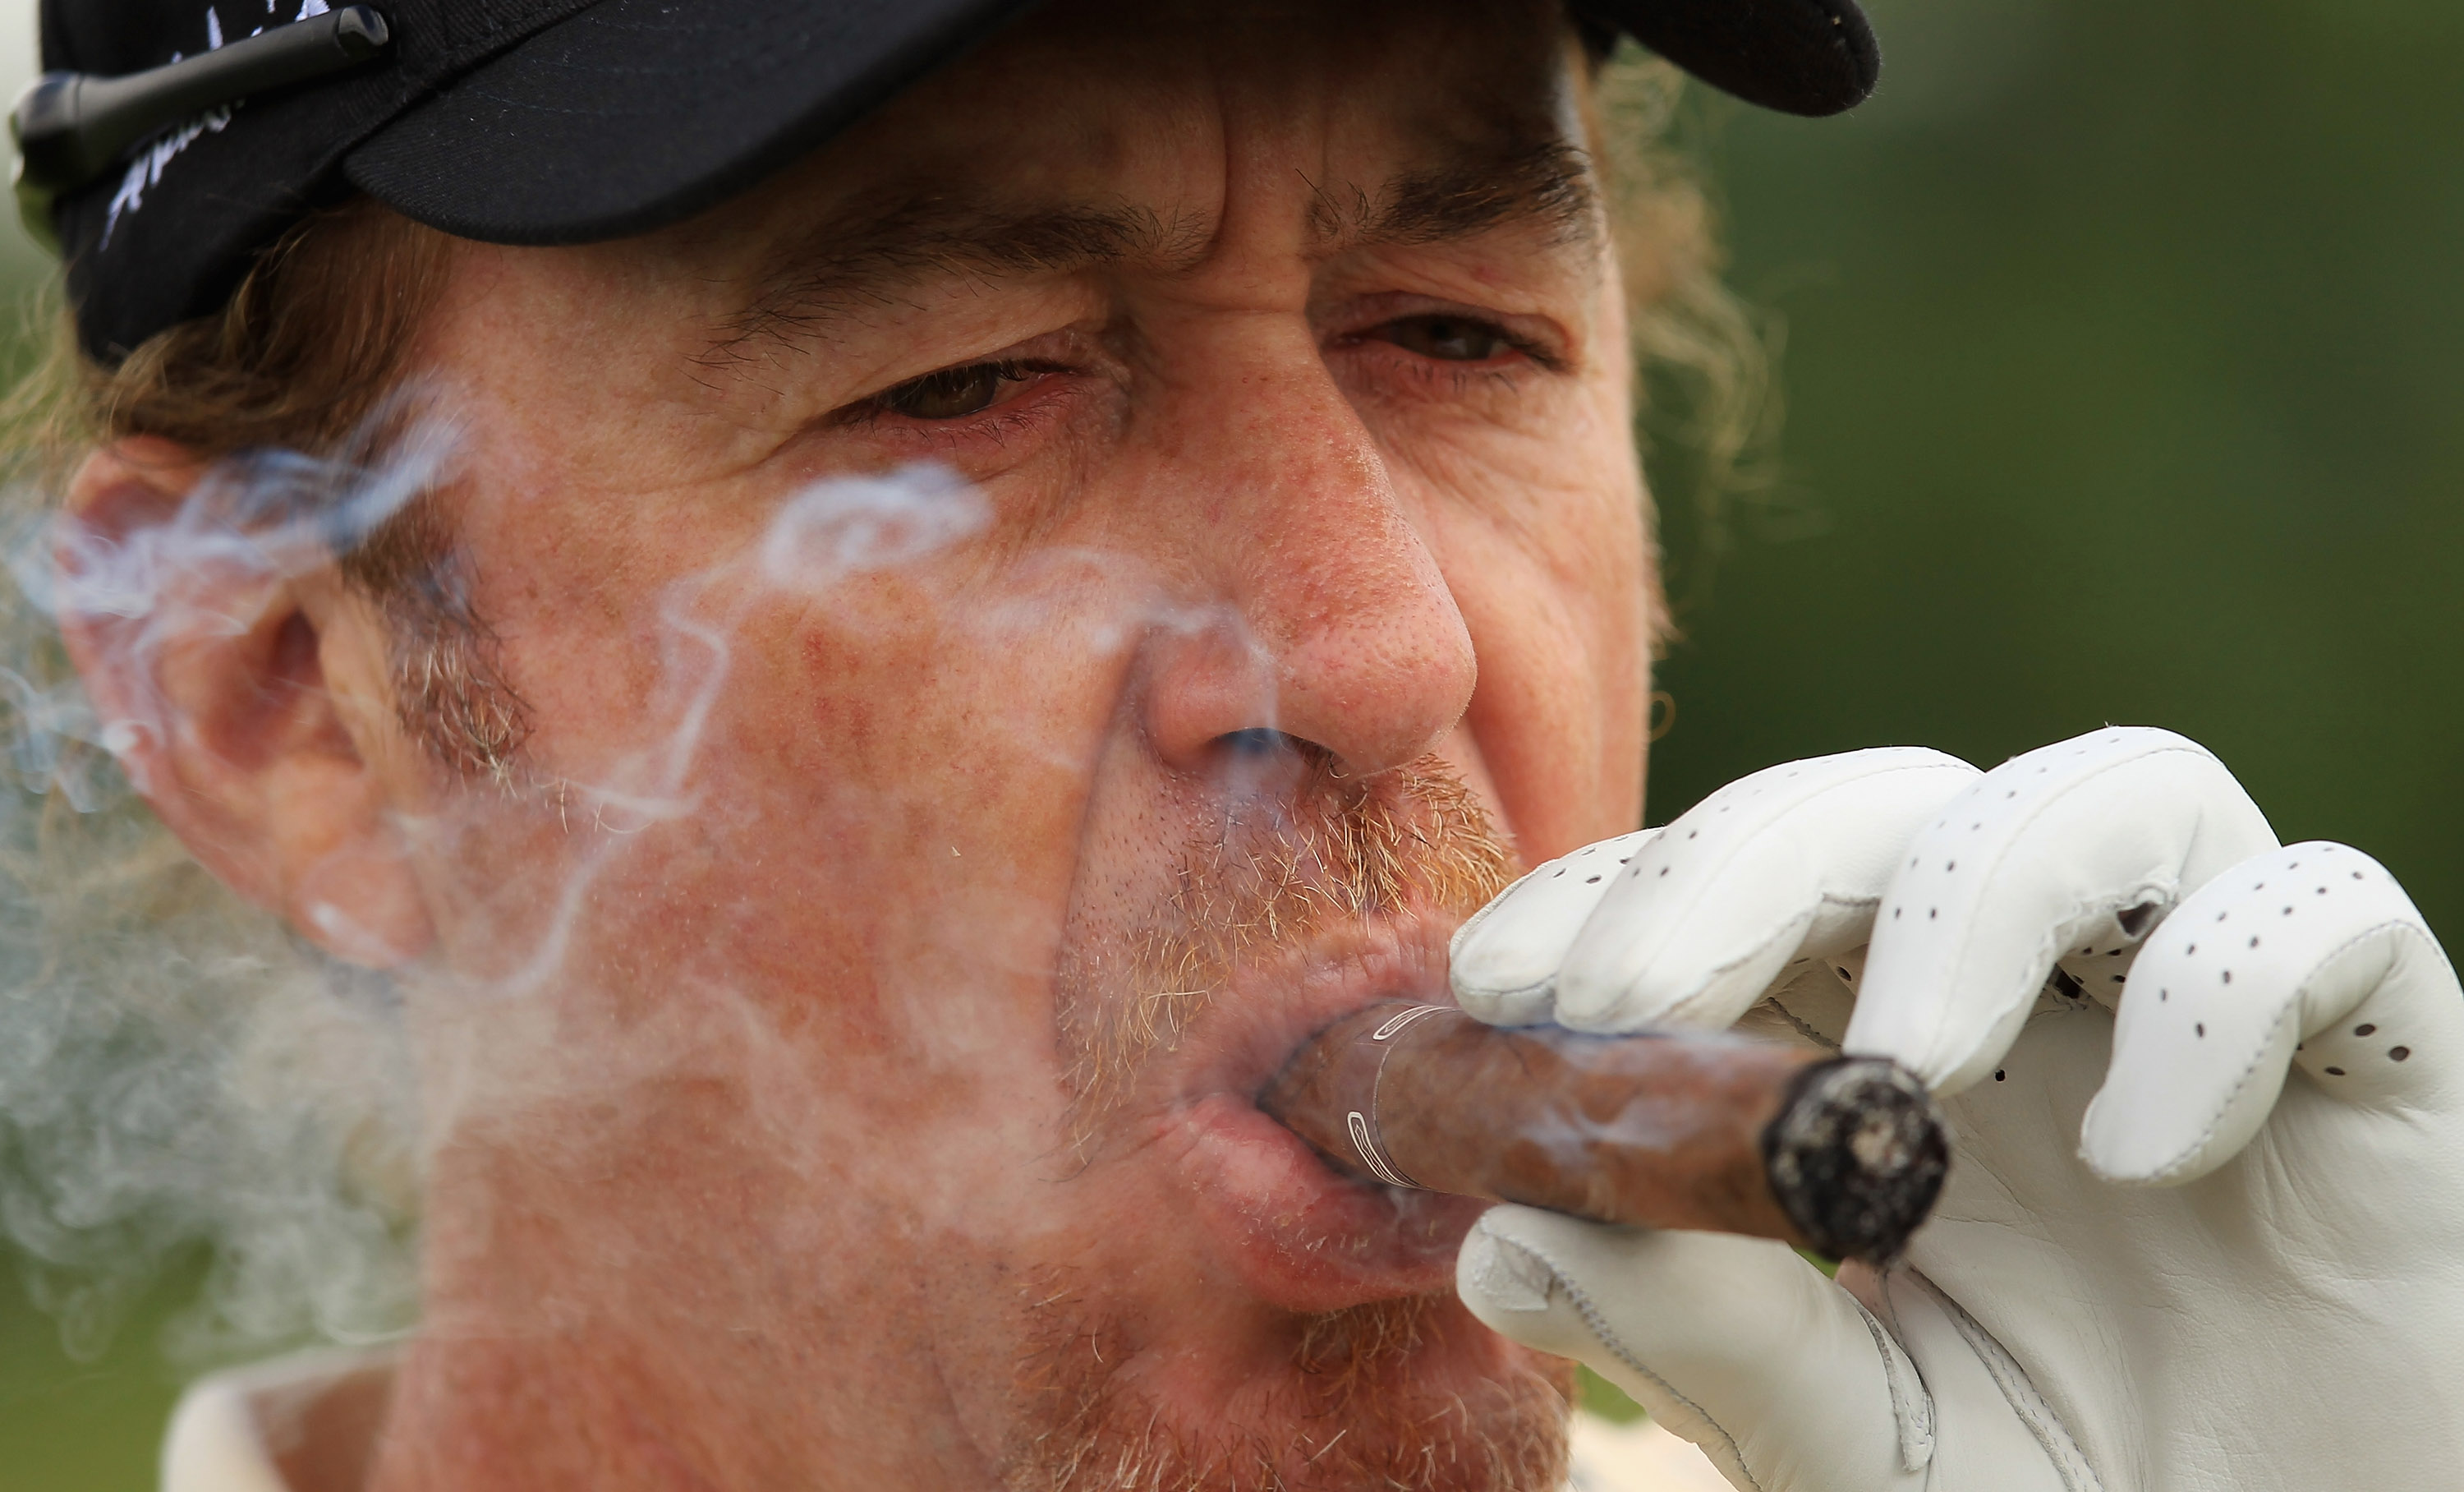 NEWPORT, WALES - JUNE 02:  Miguael Angel Jimenez of Spain lights up a cigar on the second tee during the Pro-Am for the Celtic Manor Wales Open on The Twenty Ten Course on June 2, 2010 in Newport, Wales.  (Photo by Warren Little/Getty Images)